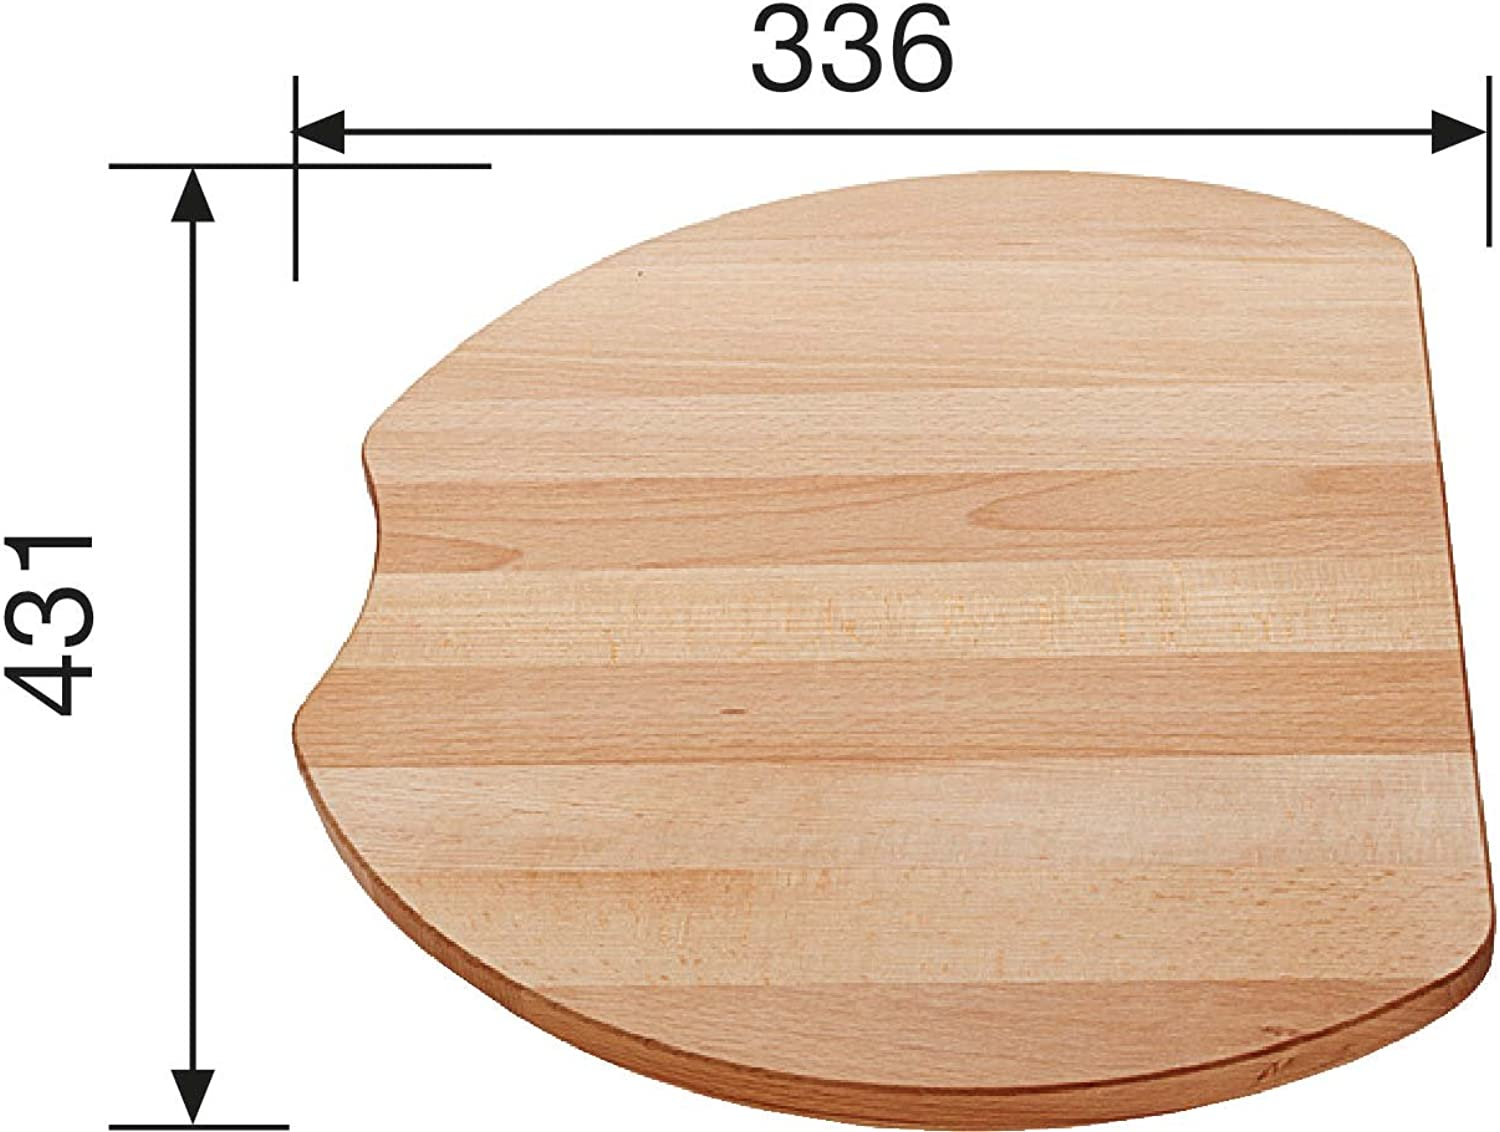 whiteo 215 525 Wooden Carving Board Beech Wood Kitchen Sink Sink Accessories